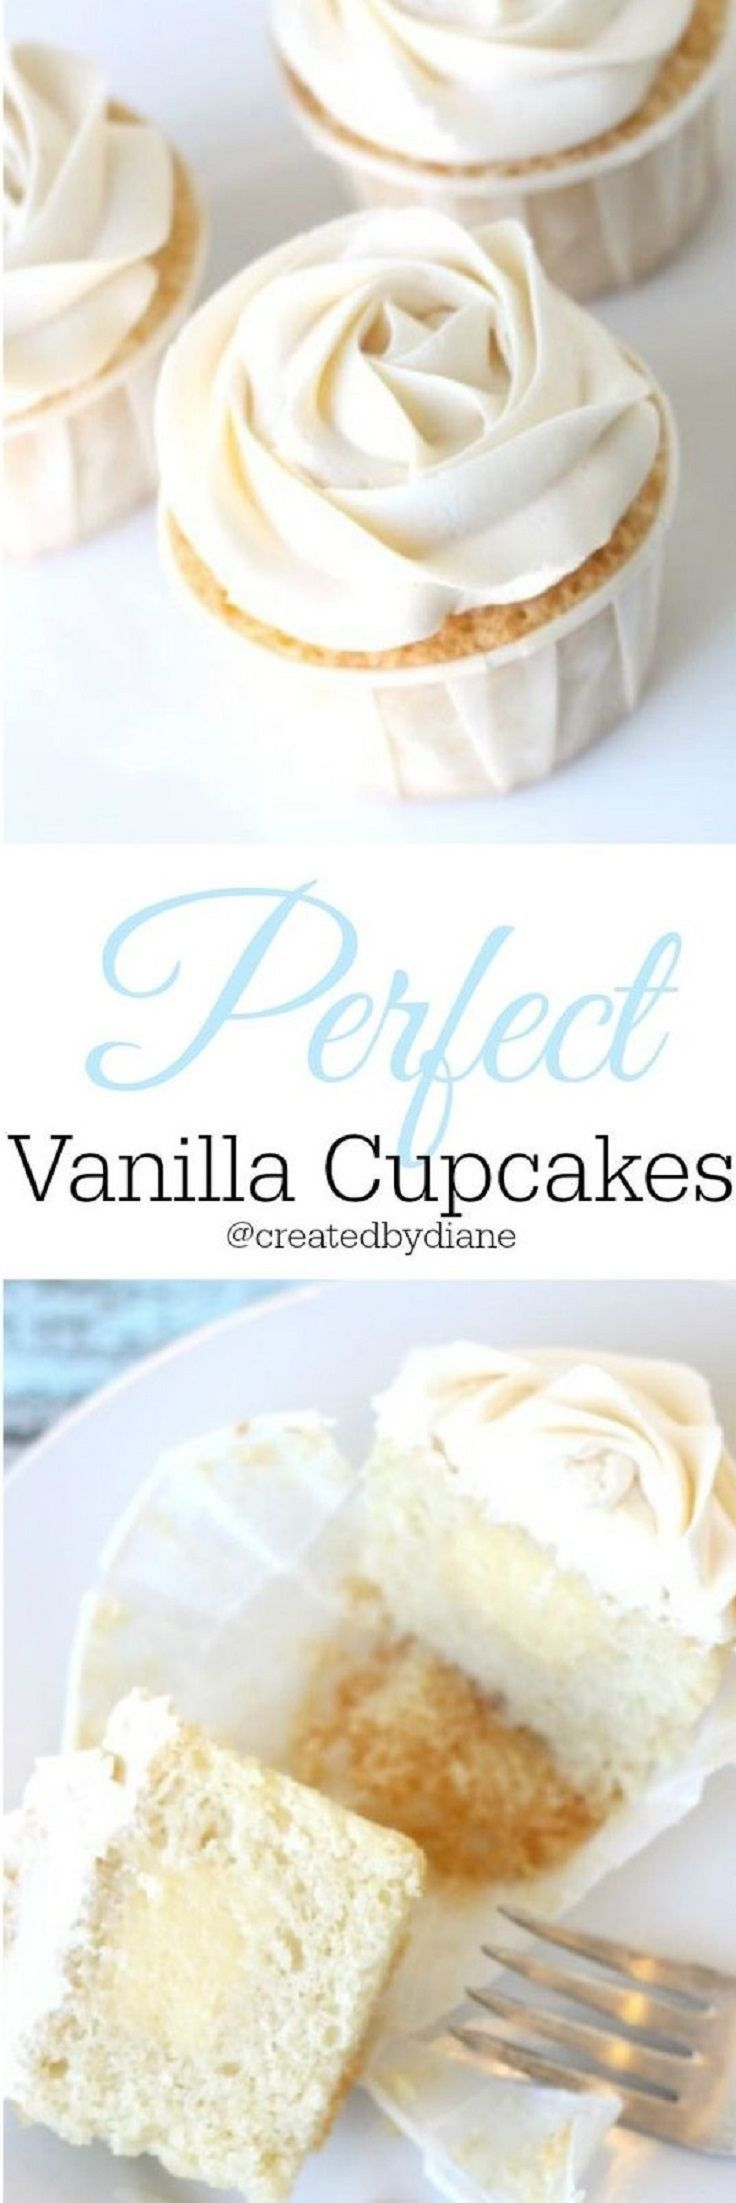 Vanilla Cupcakes Filled with Pastry Cream and Vanilla Frosting - 15 Extra Creamy Vanilla Cupcakes that You Can Easily Make on Your Own